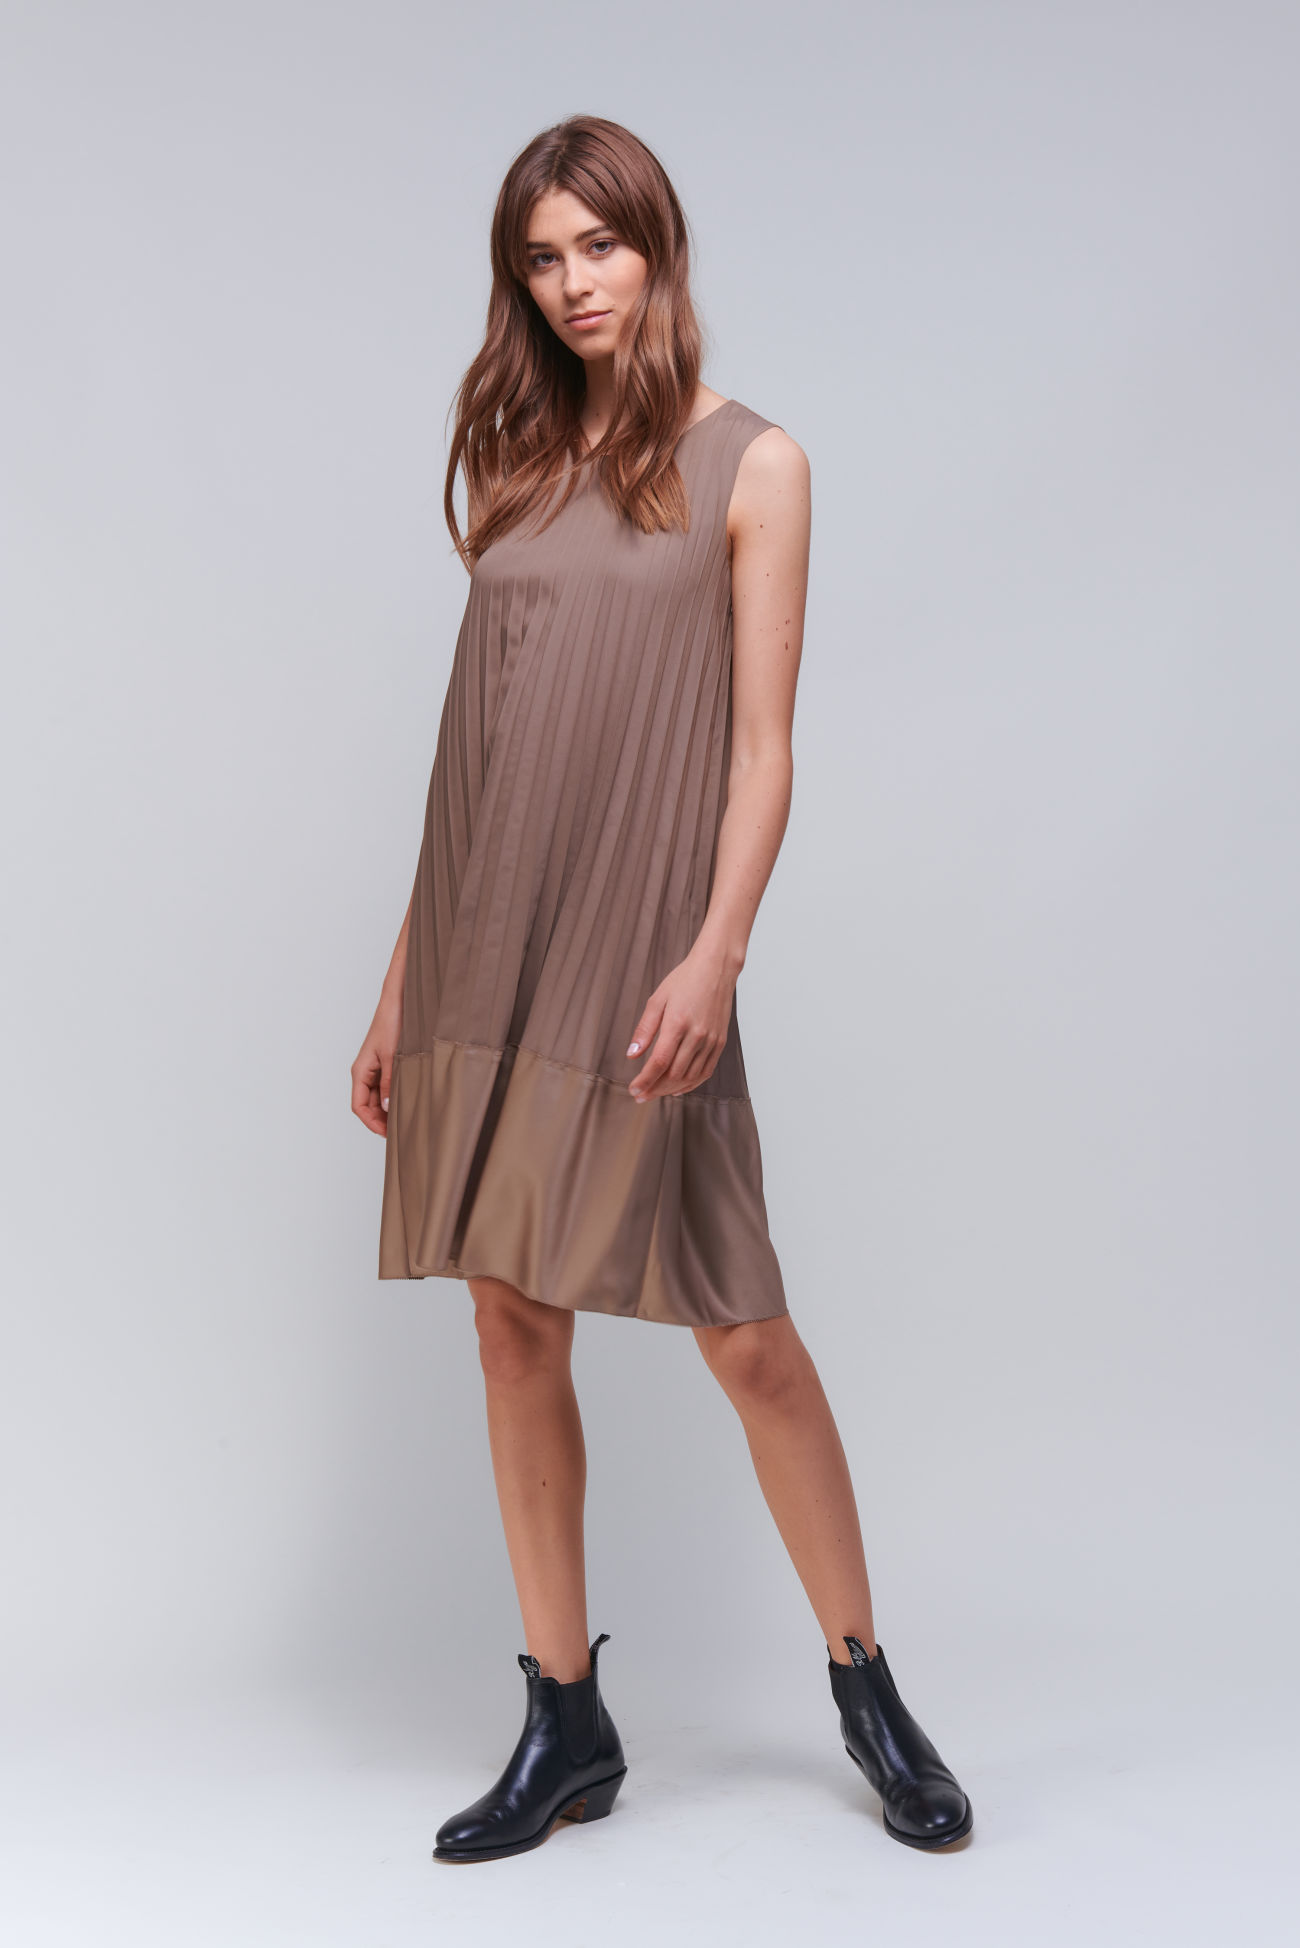 Sleeveless pleated dress in a matt / shiny mix